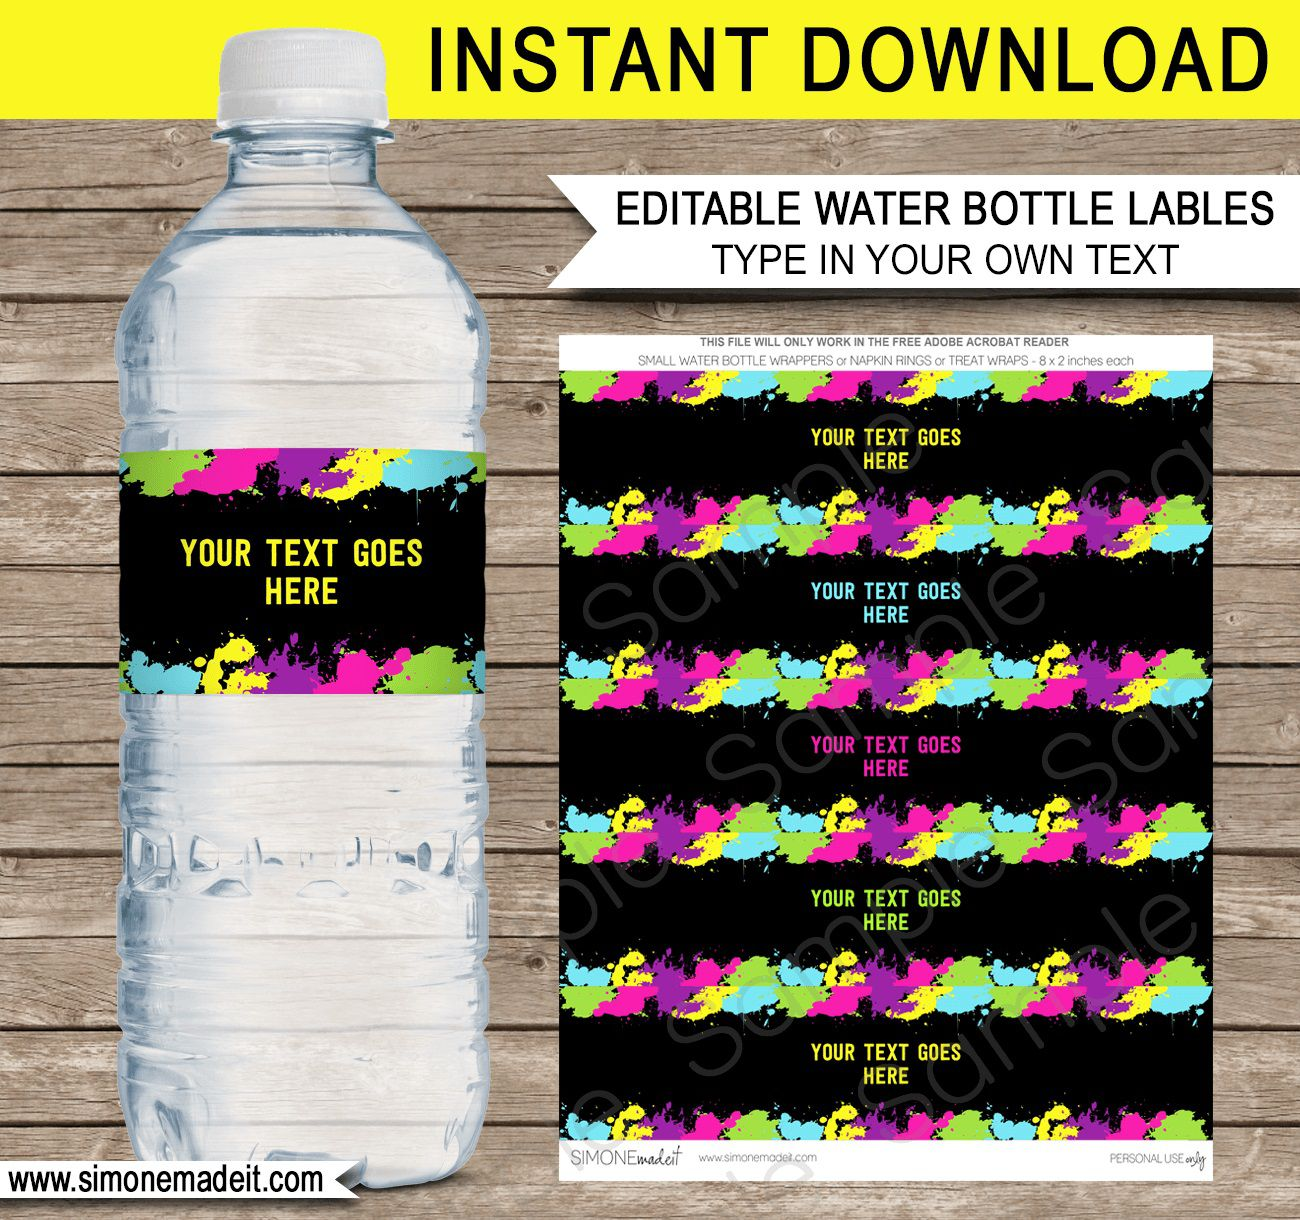 005 Remarkable Water Bottle Label Template Image  Free Photoshop Baby Shower PsdFull